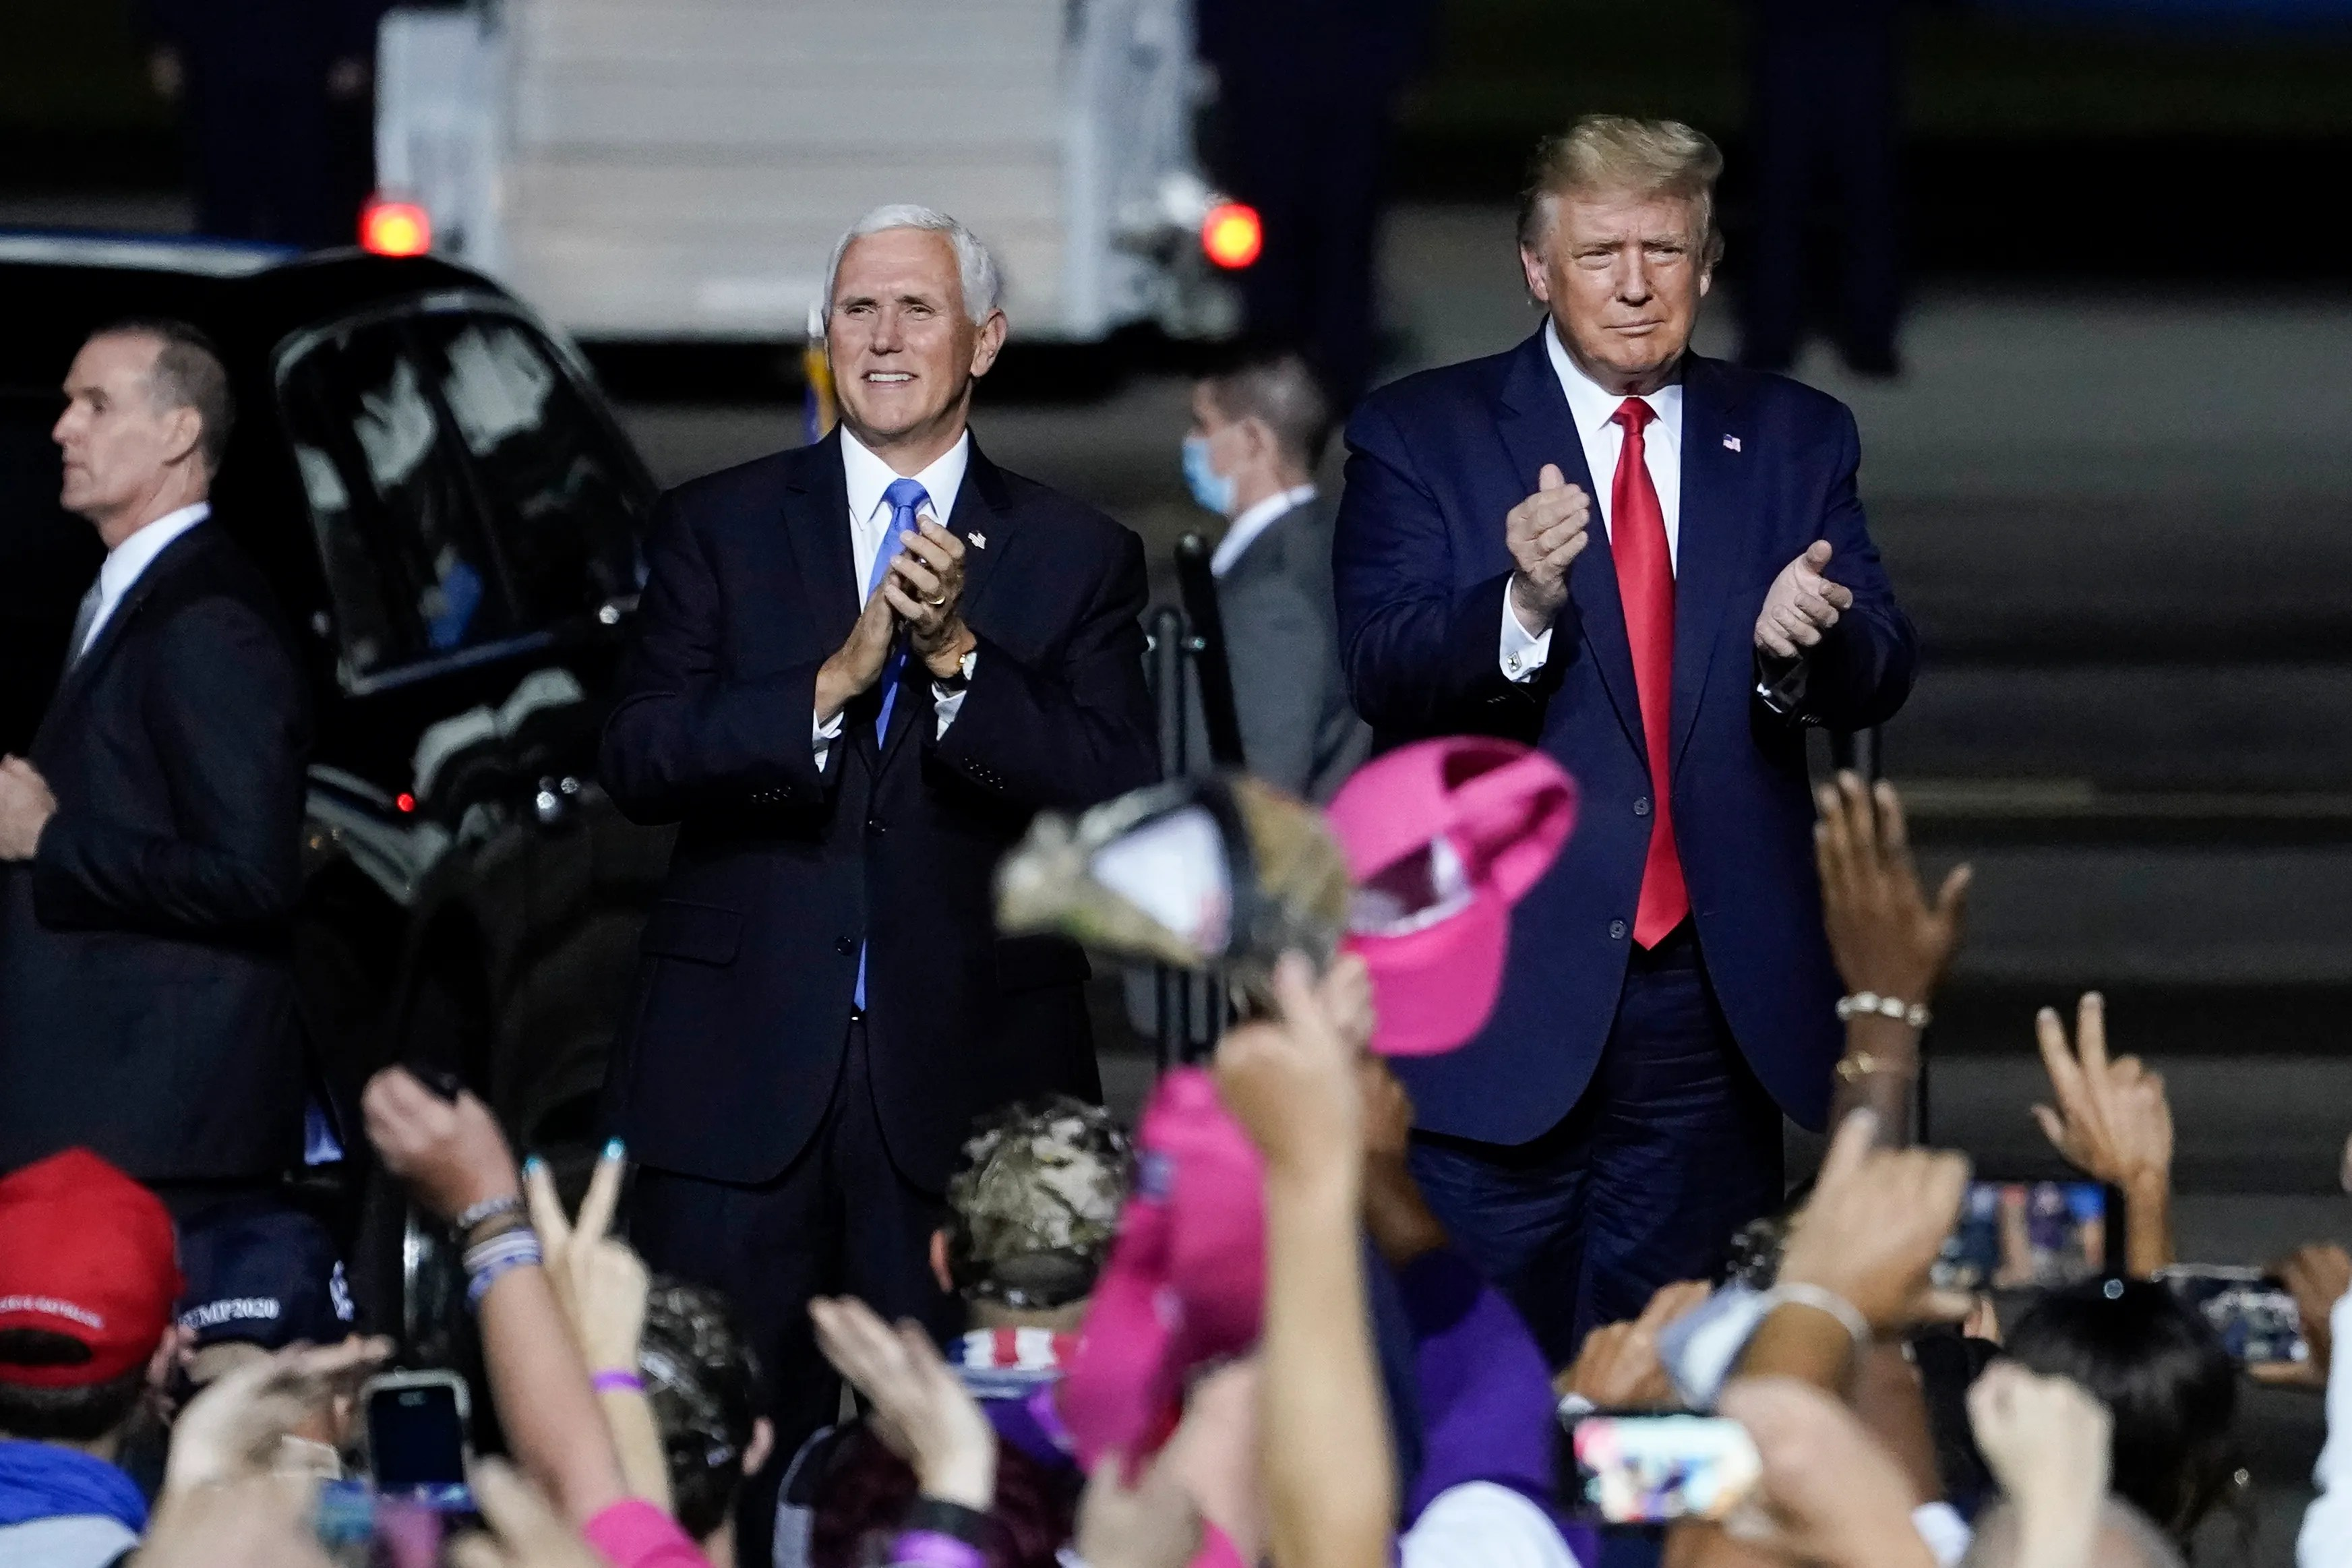 President Trump and Vice President Pence arrive for a campaign rally at Newport News/Williamsburg International Airport on Sept. 25, 2020 in Newport News, Va.